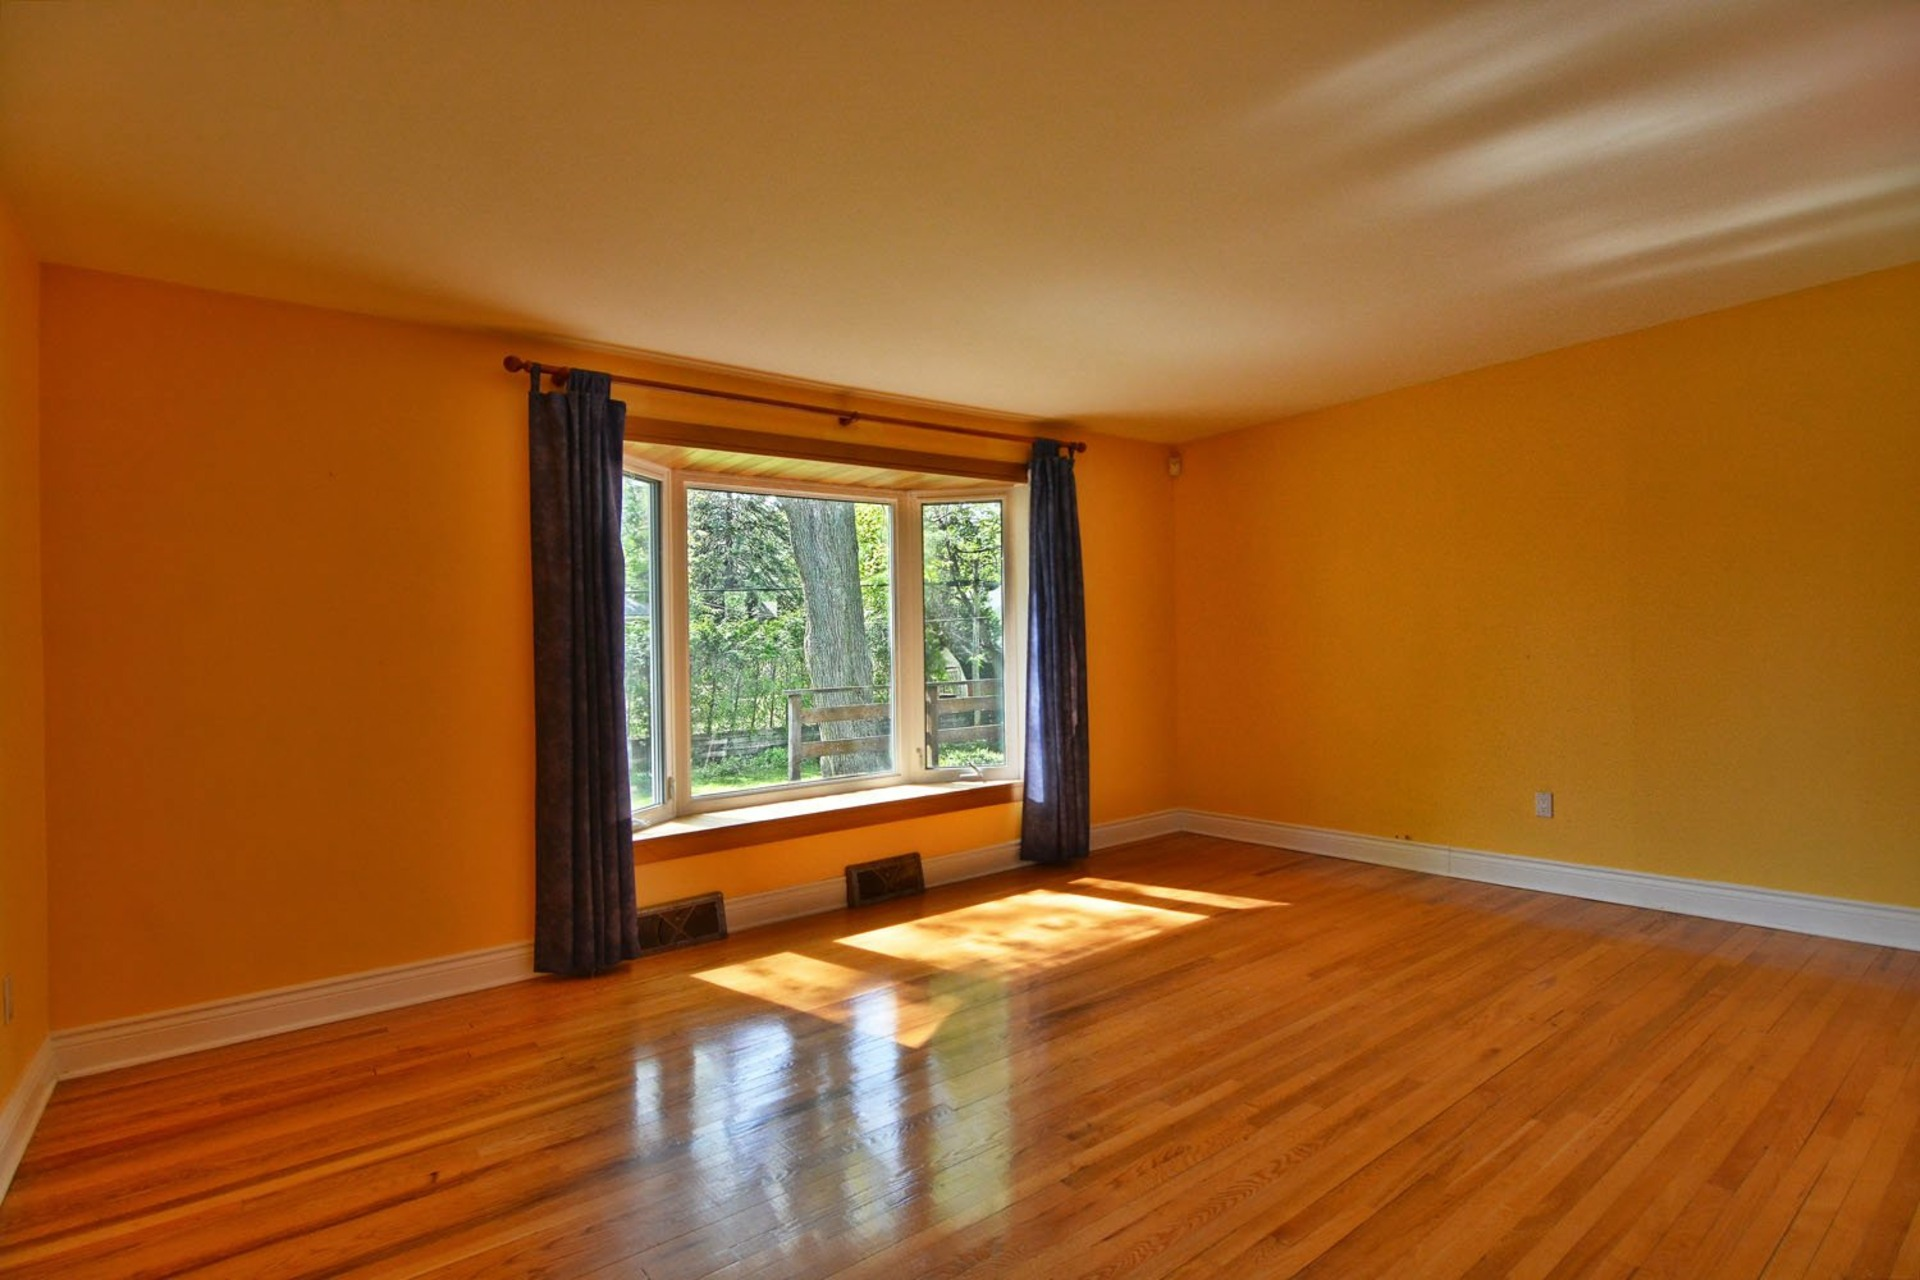 image 5 - House For rent Beaconsfield - 7 rooms